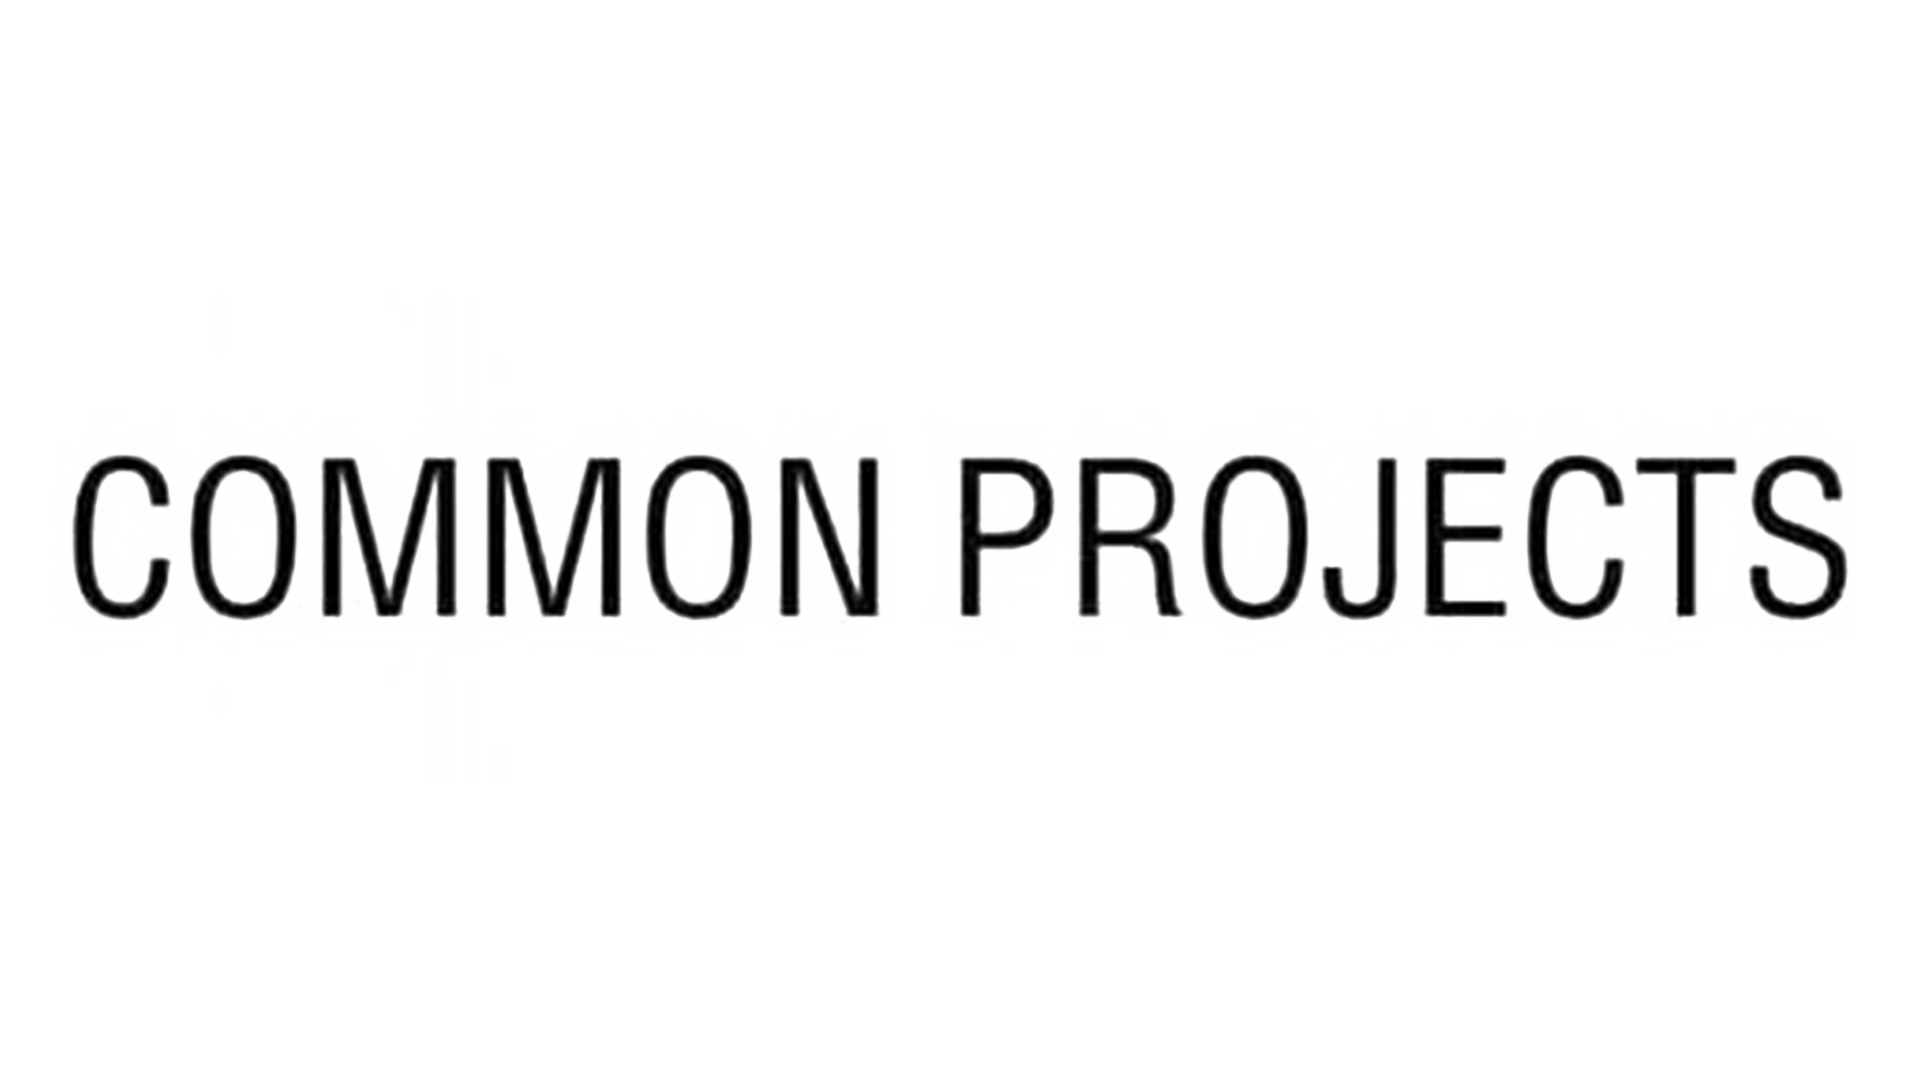 commonprojectsbrand logo